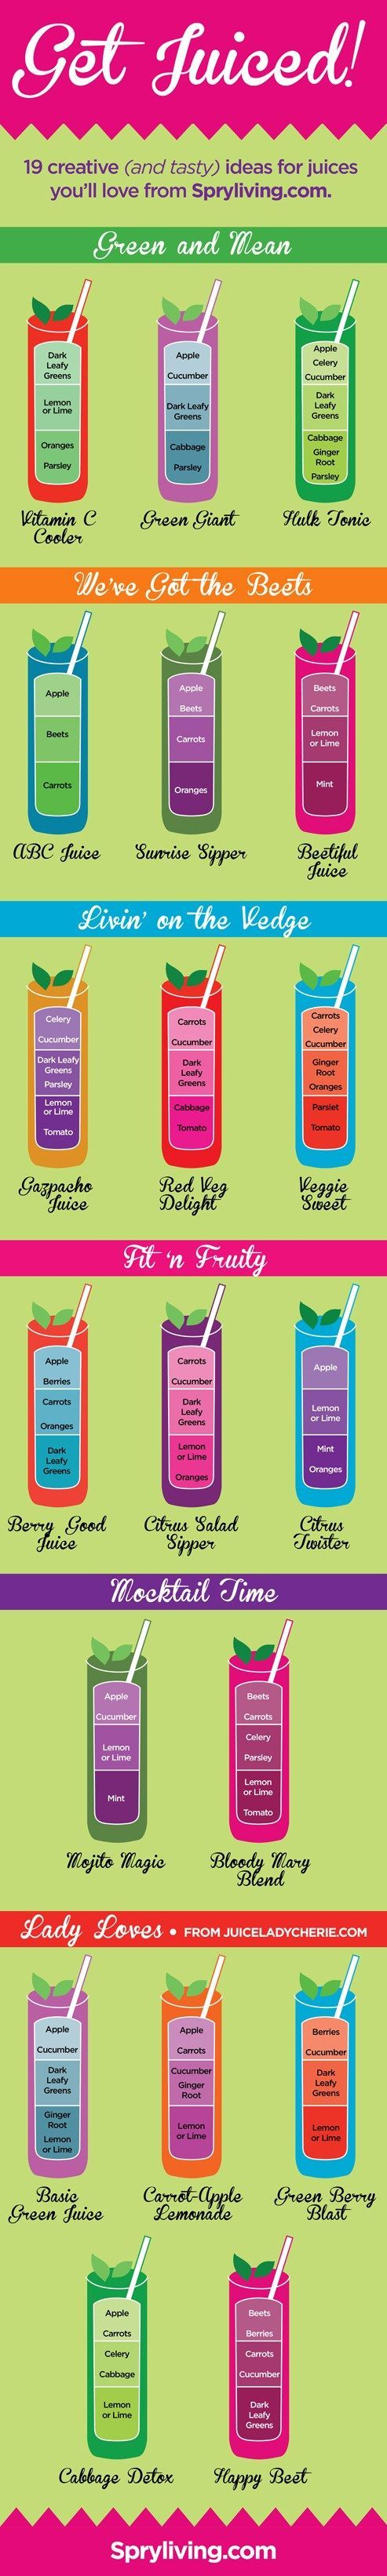 We all know juicing is good for us, but half the battle with getting into juicing regularly is knowing what ingredients to use for a delicious juice. Here are 1